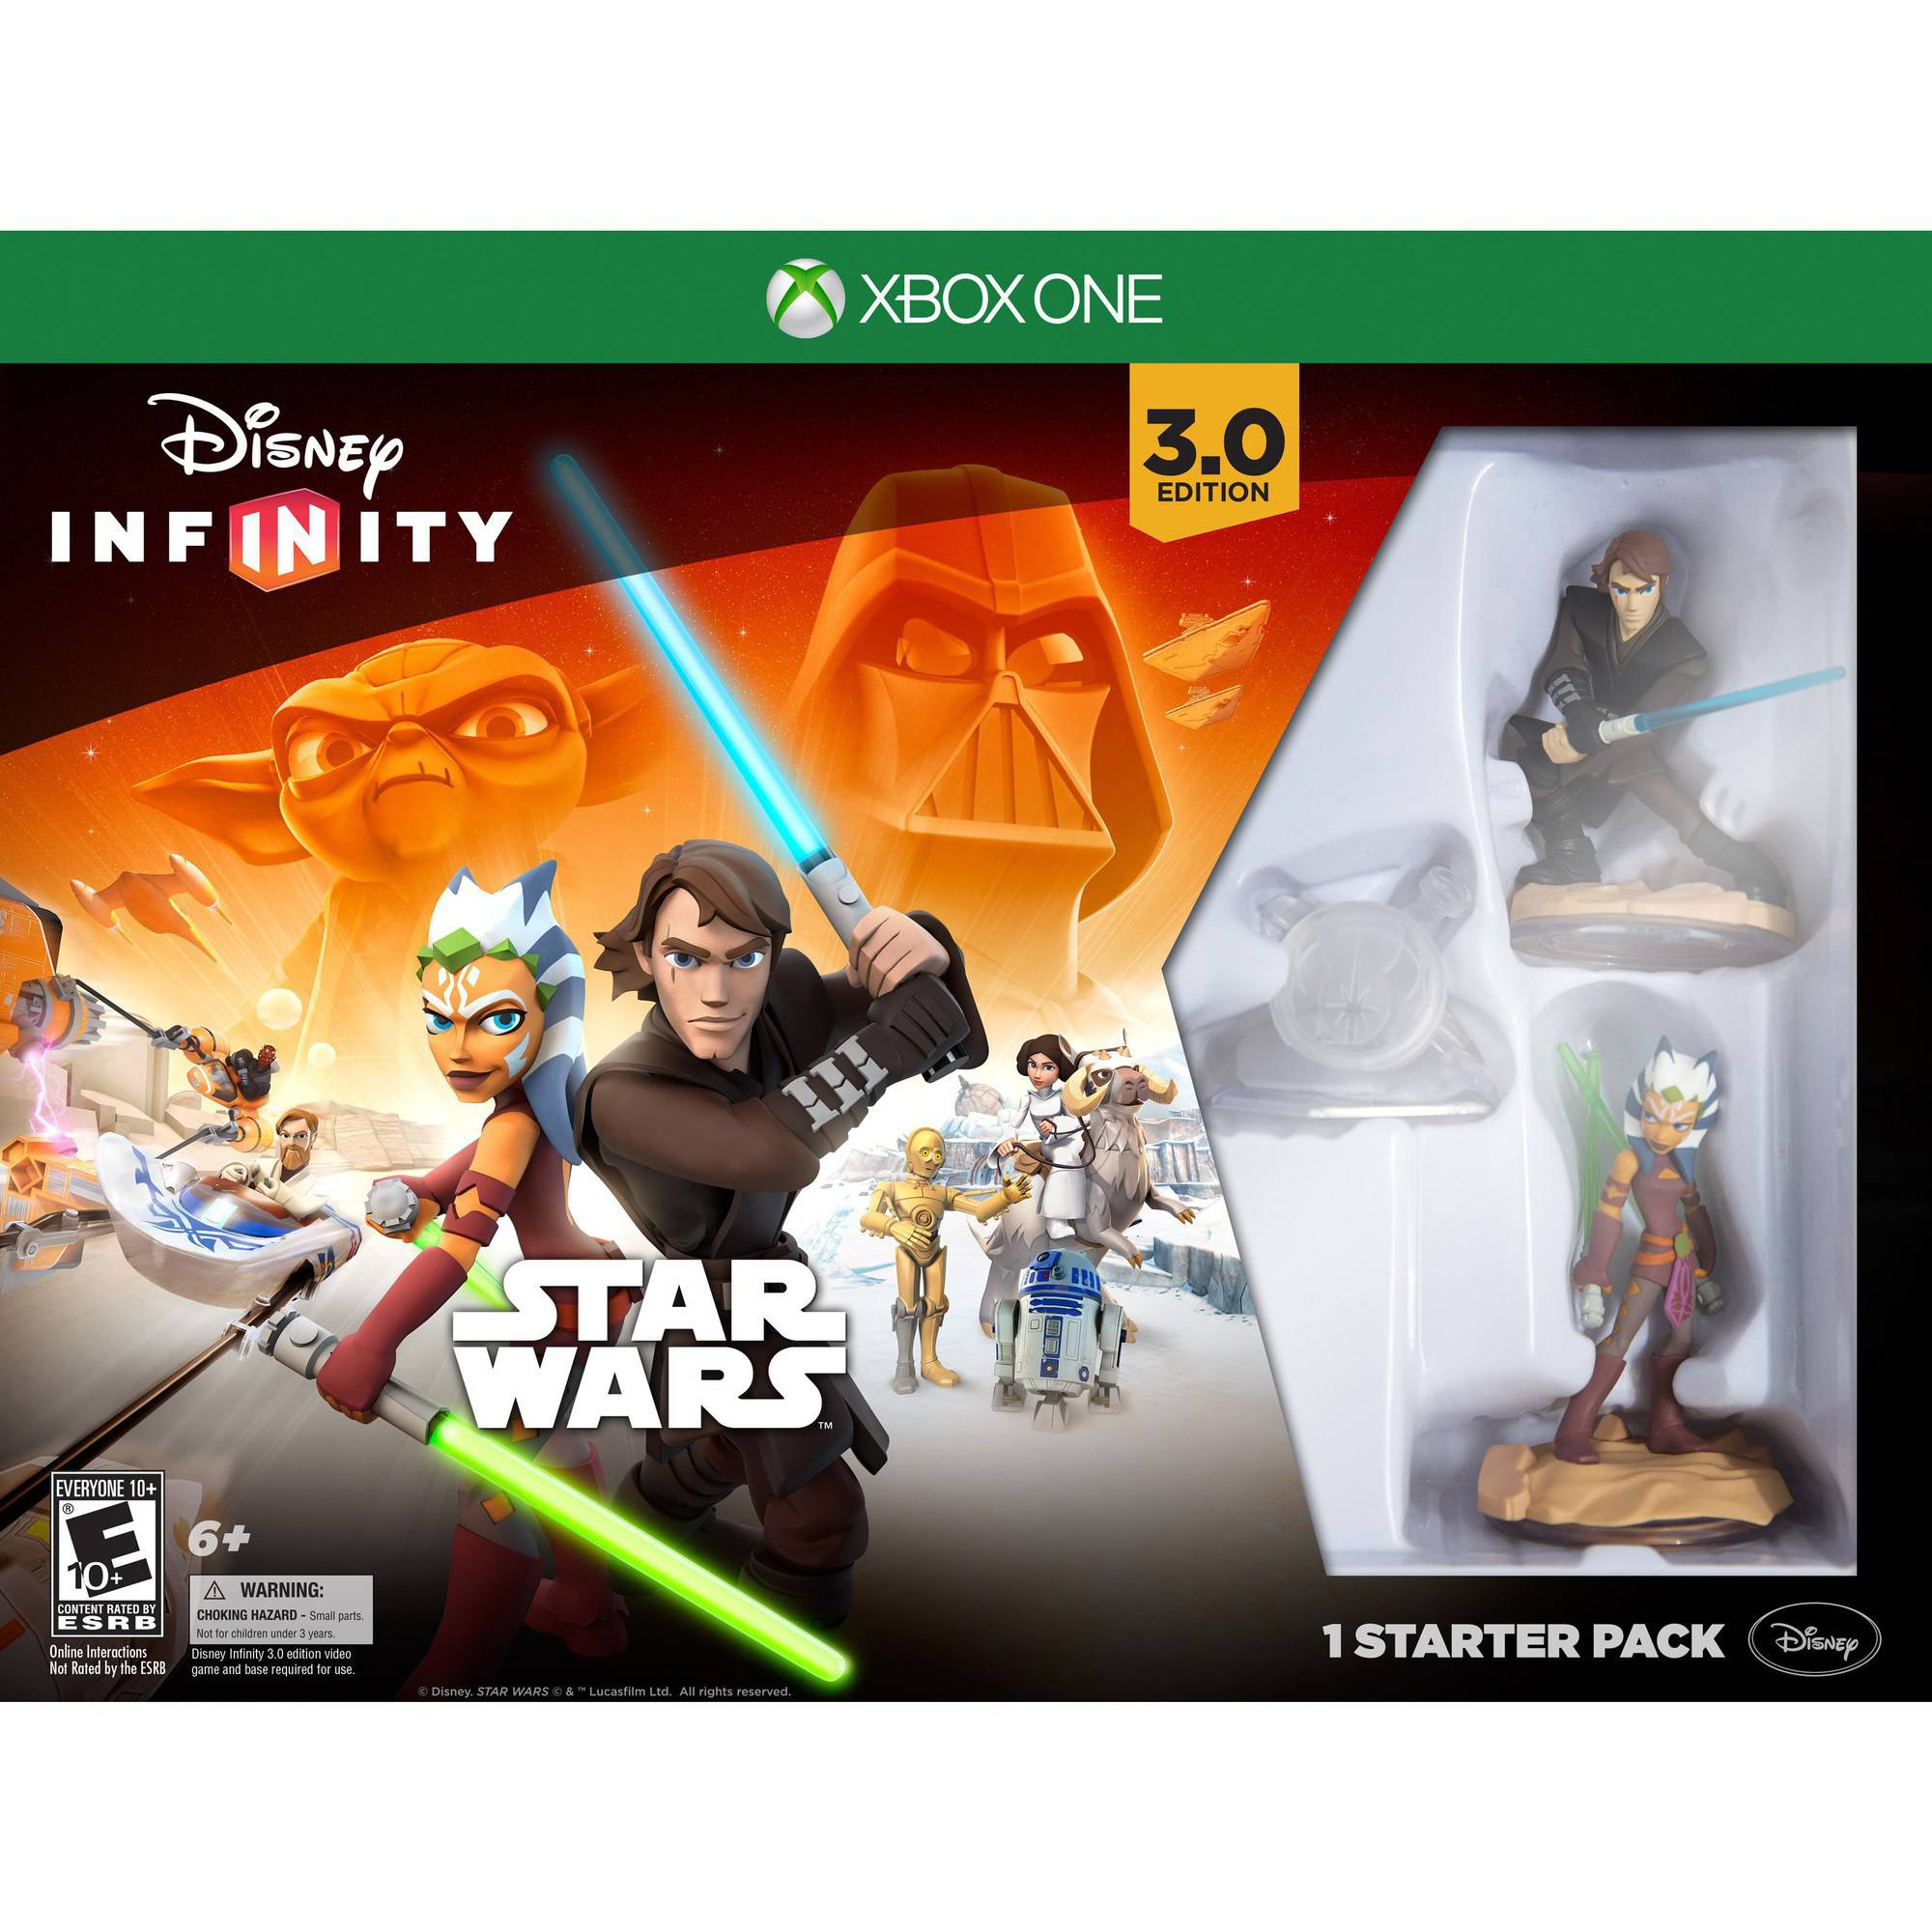 Disney Infinity 3.0 Edition Starter Pack (Xbox One) by Disney,Avalanche Software